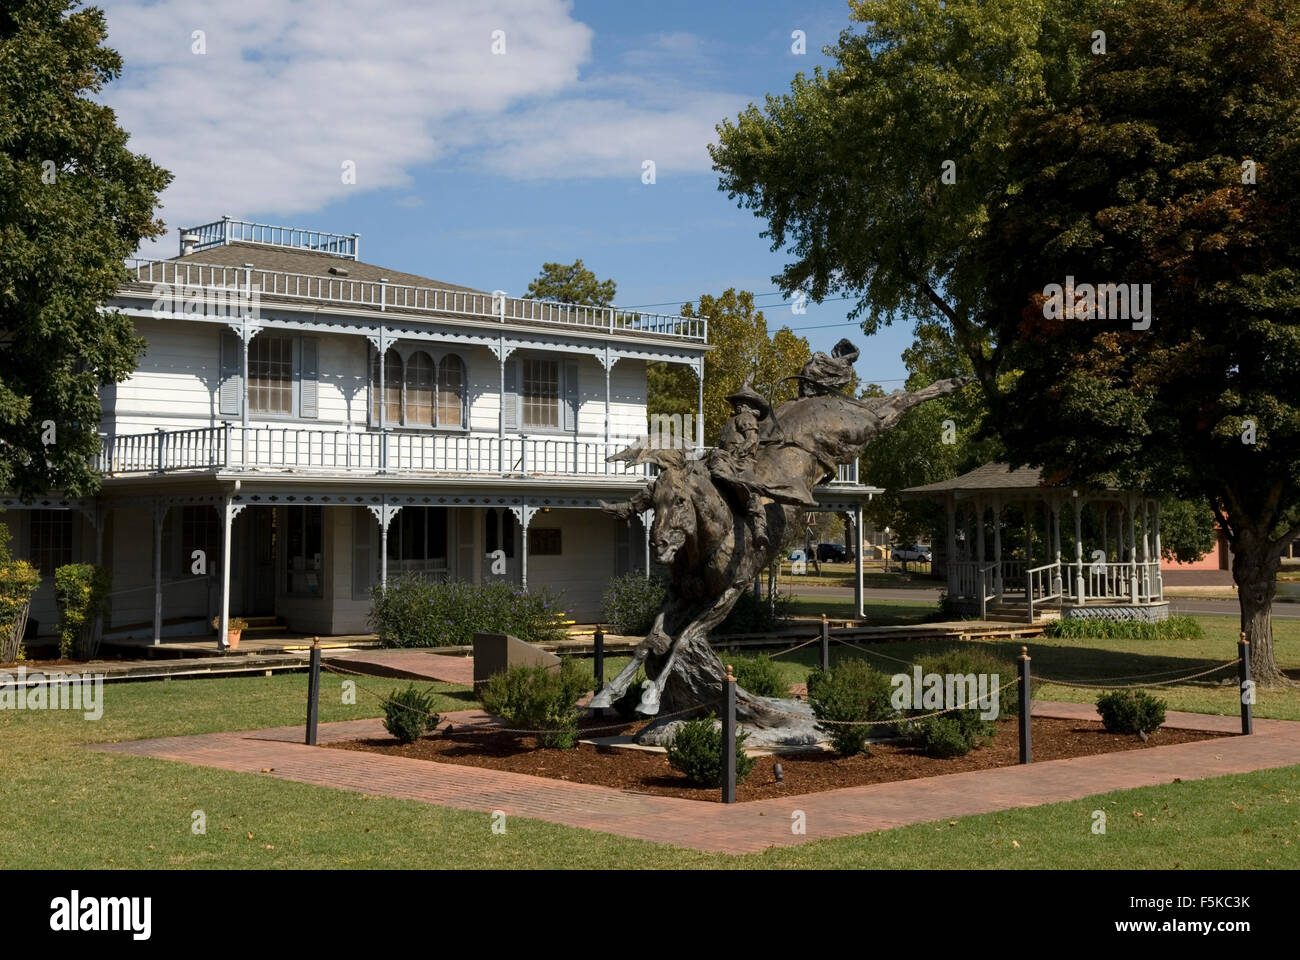 Commotion Statue Old Town Museum Elk City Oklahoma USA - Stock Image